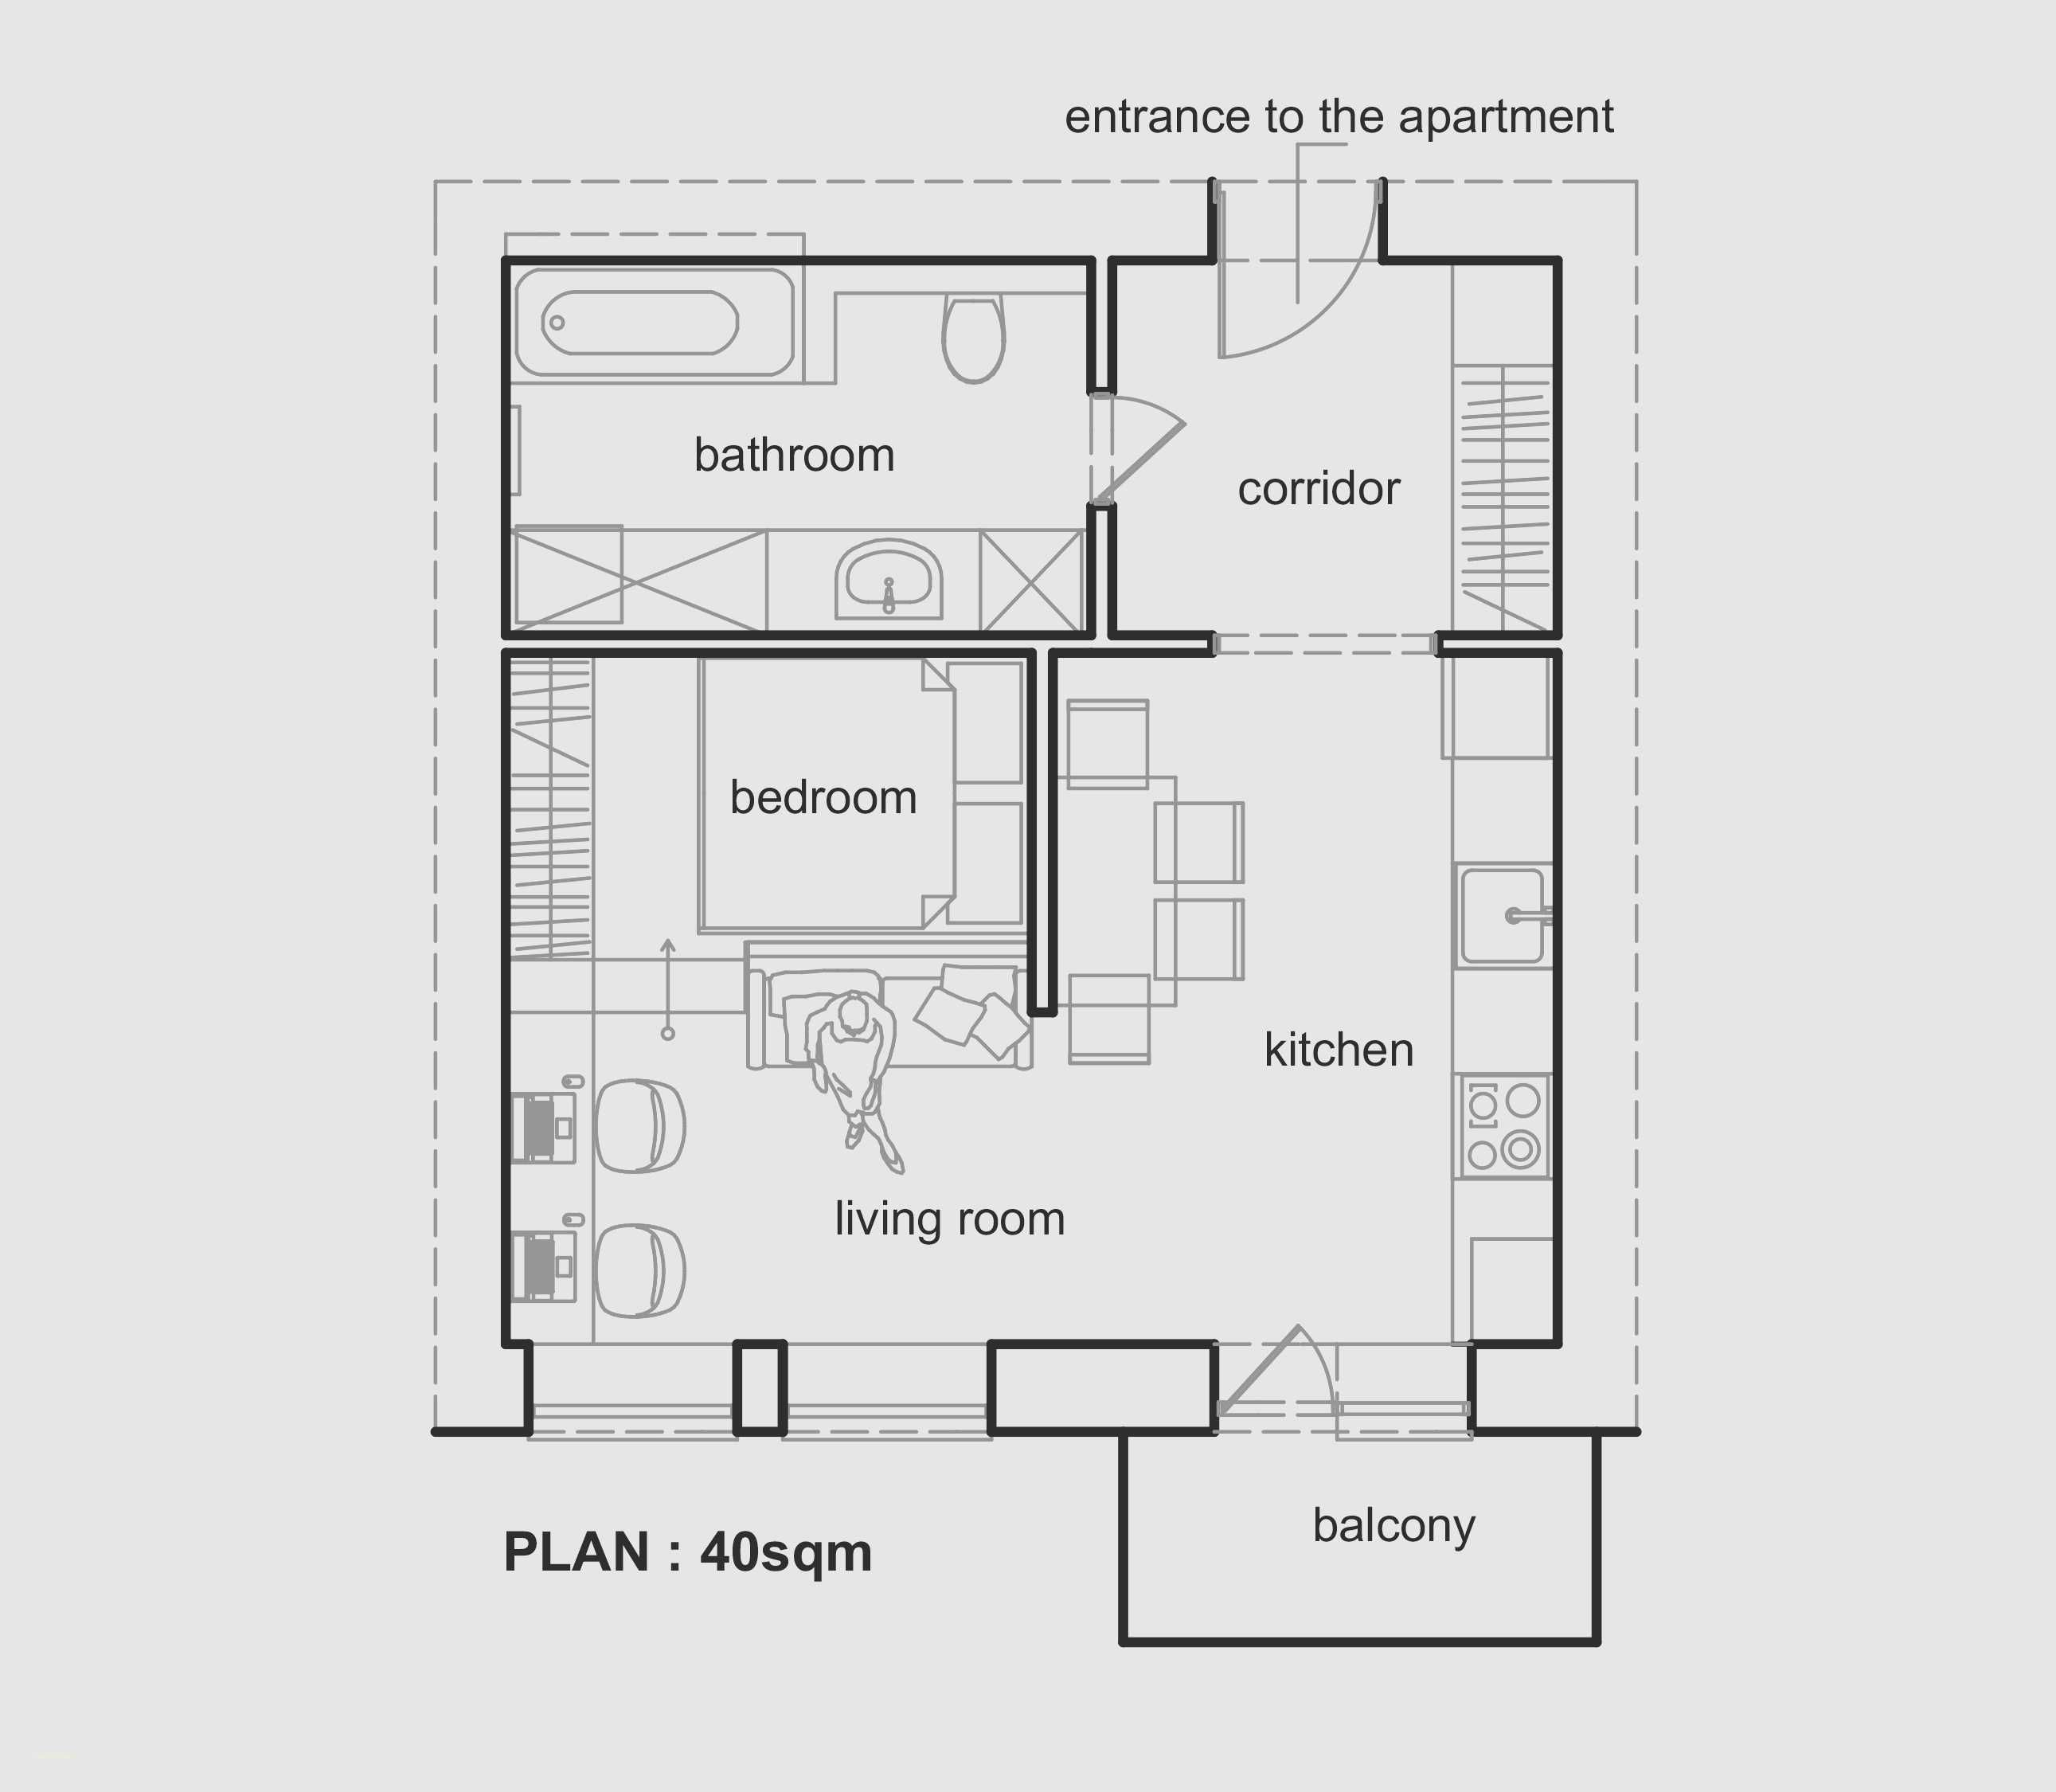 10sm hotel guest room plan - Google Search  Small apartment plans